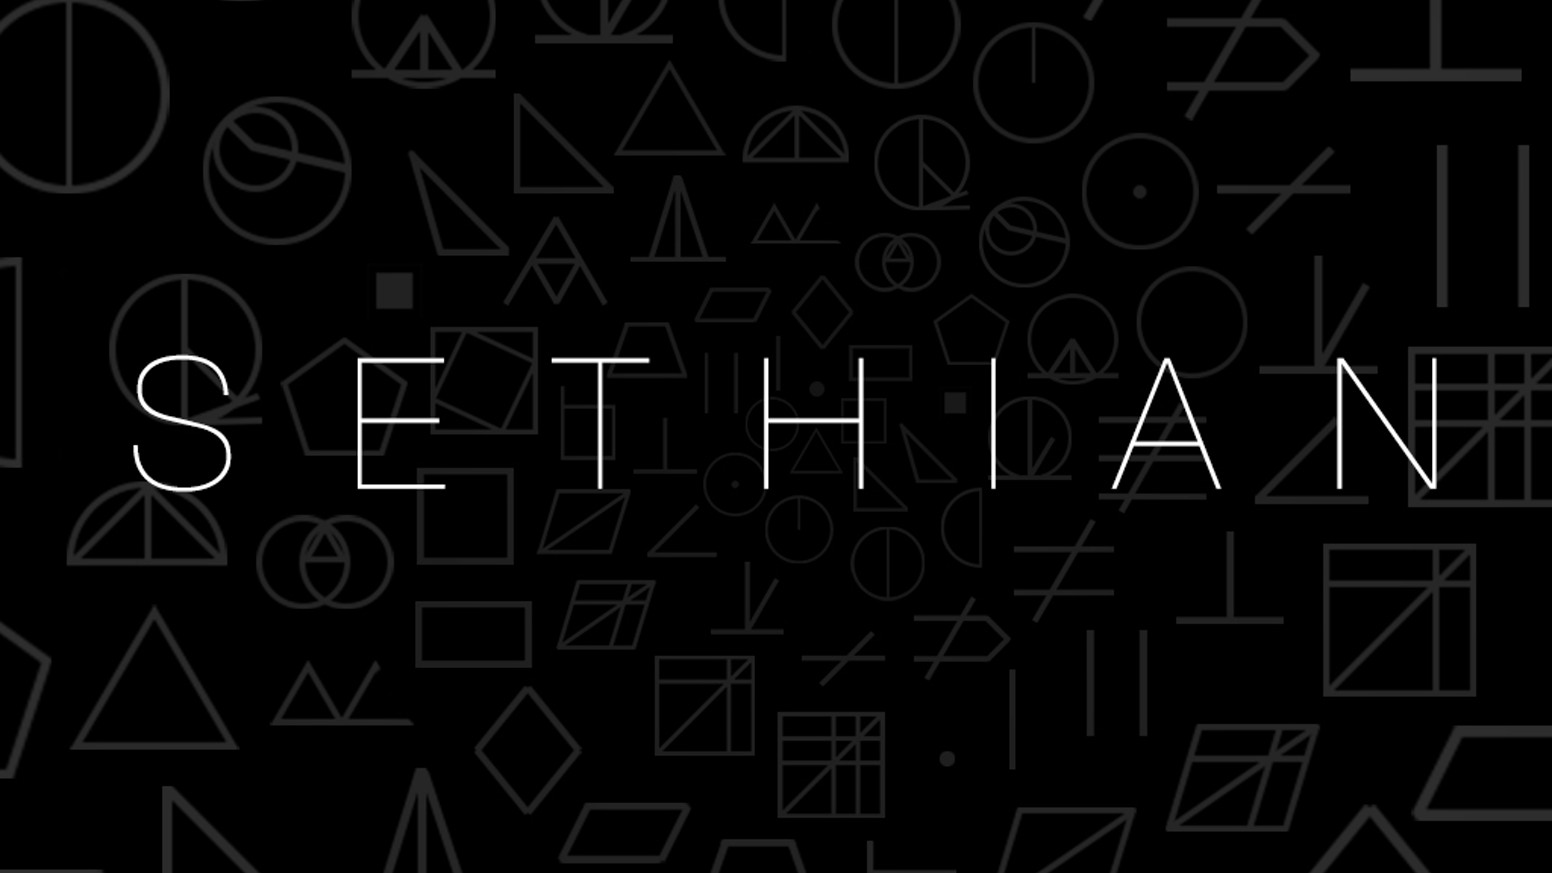 Sethian - a sci-fi language puzzle game by Grant Kuning